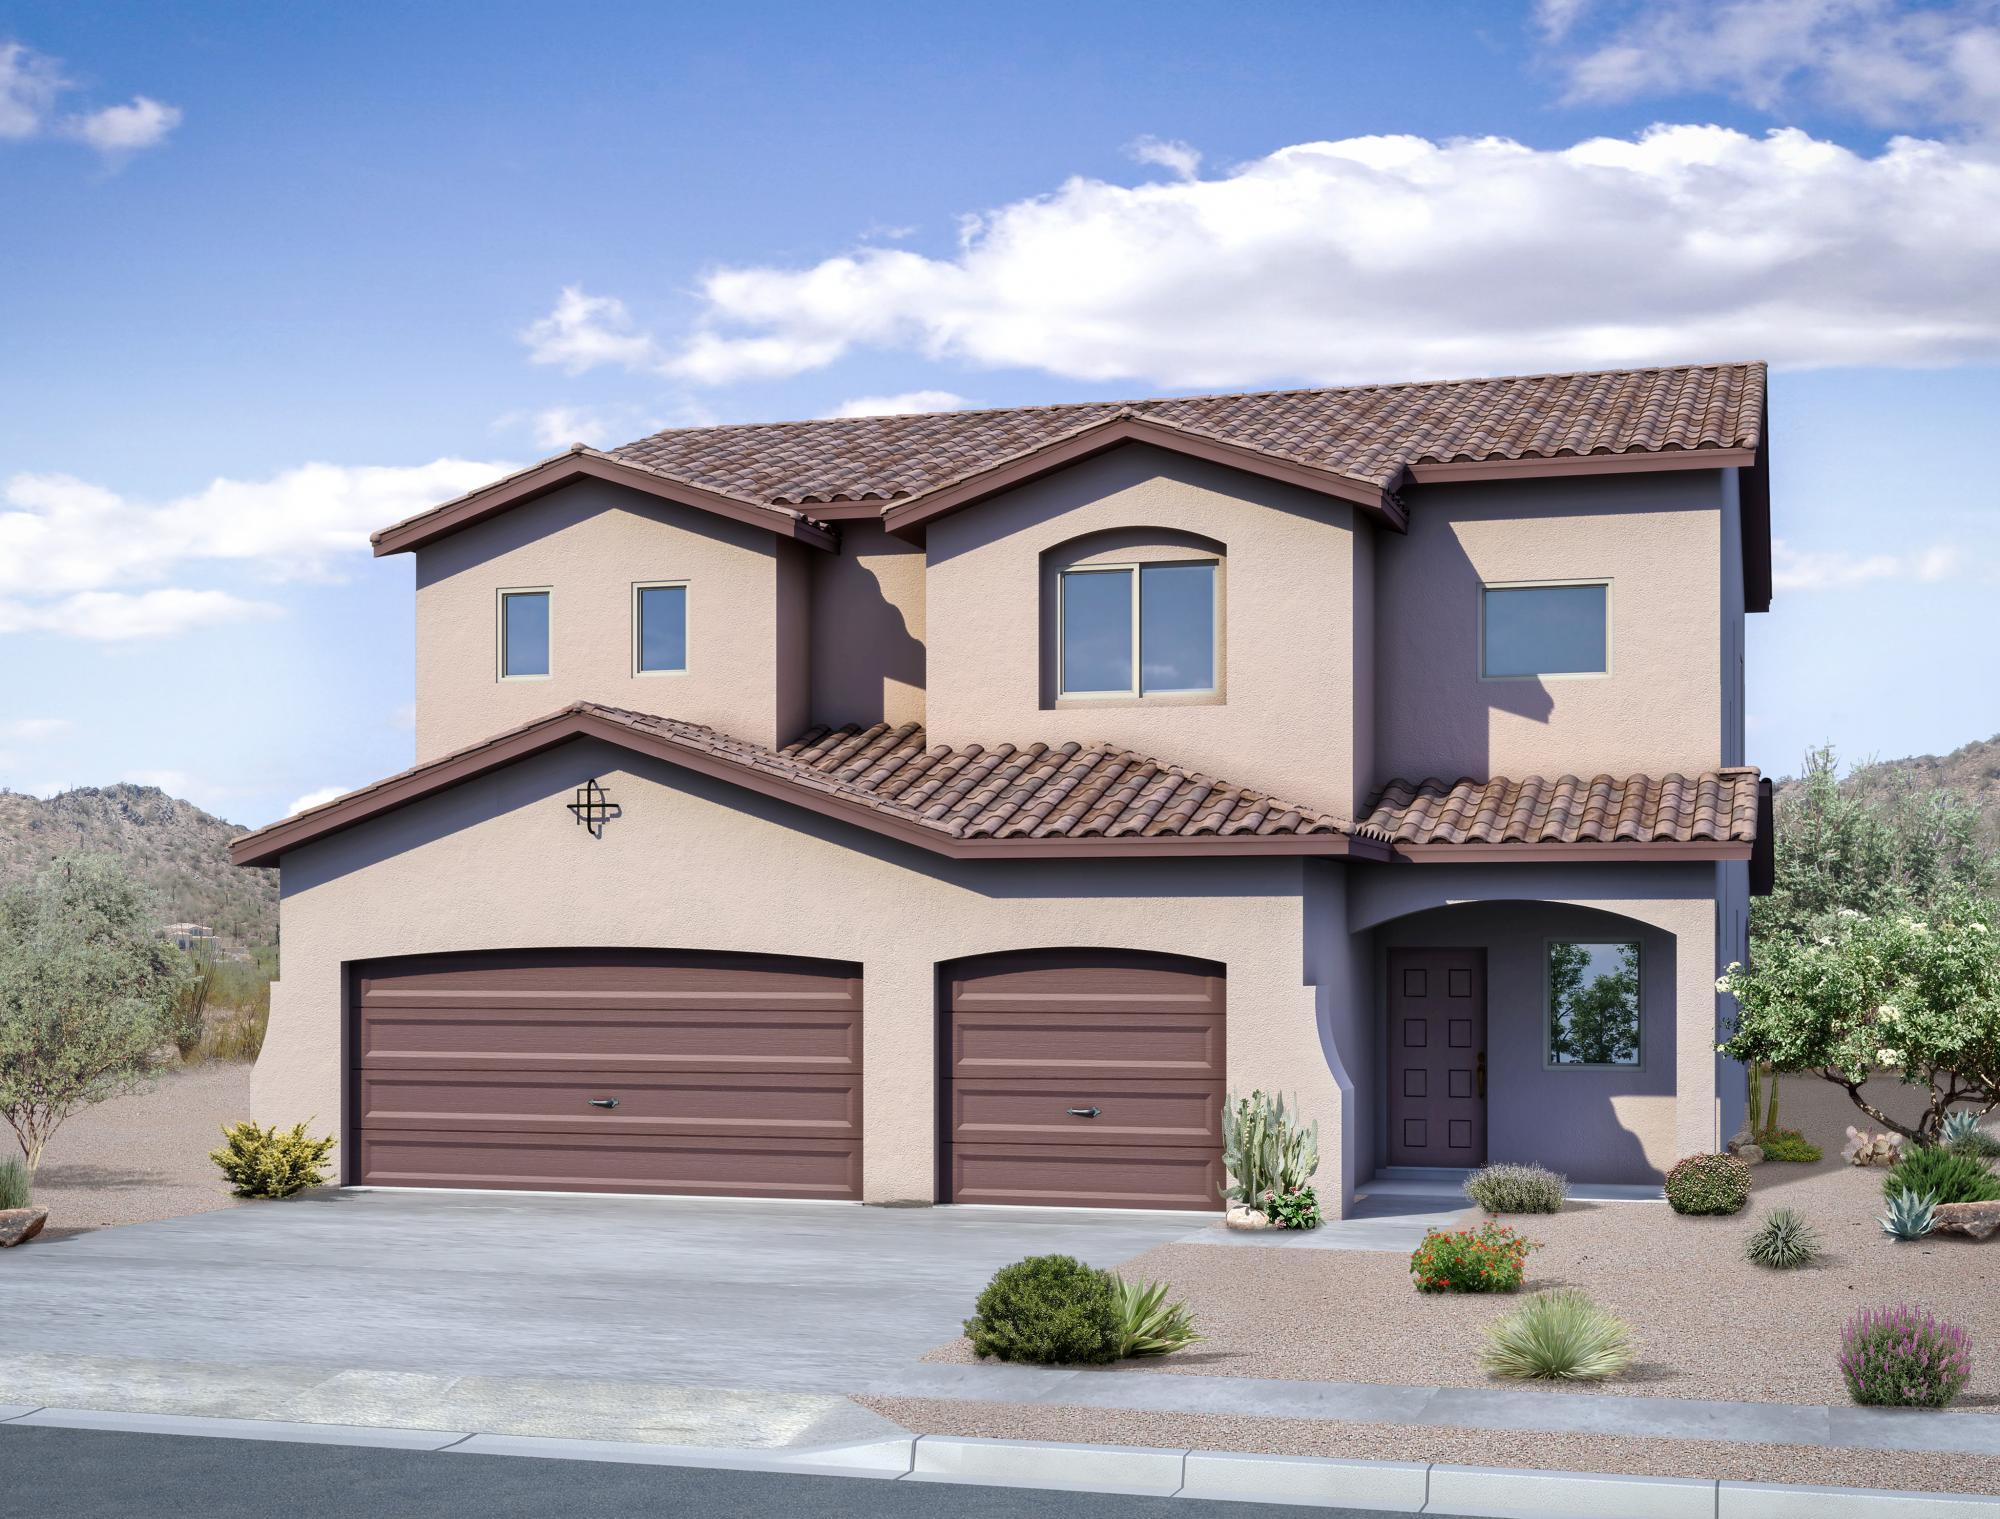 Single Family for Sale at Estates At Santa Monica - The Rosa Ii Sm 7309 Brentwood Boulevard Ne Albuquerque, New Mexico 87109 United States